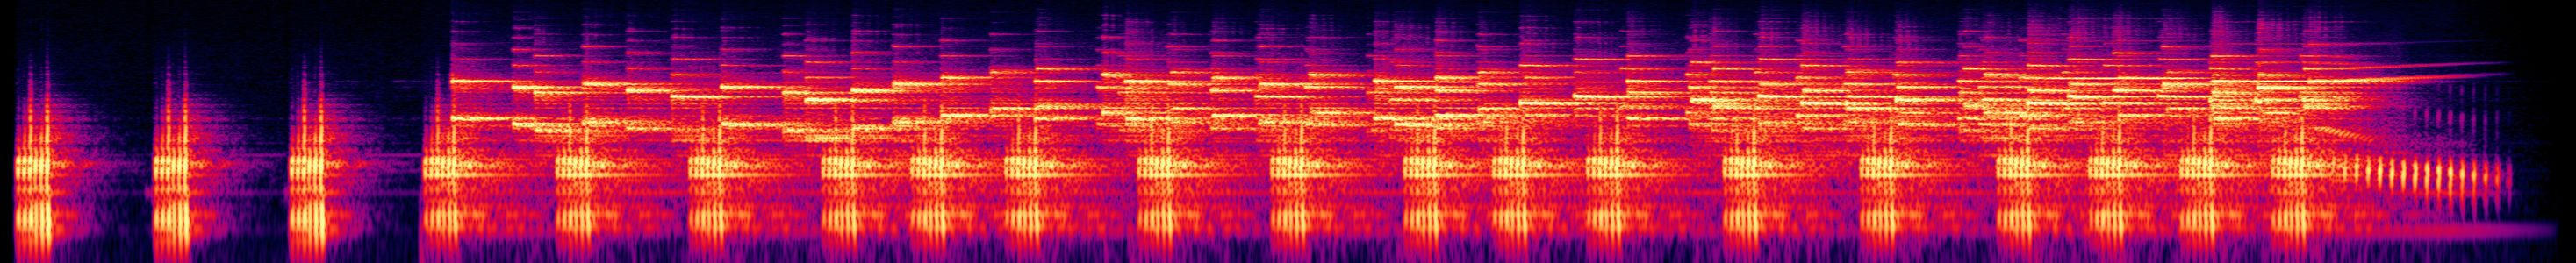 Towards Tomorrow - Spectrogram.jpg